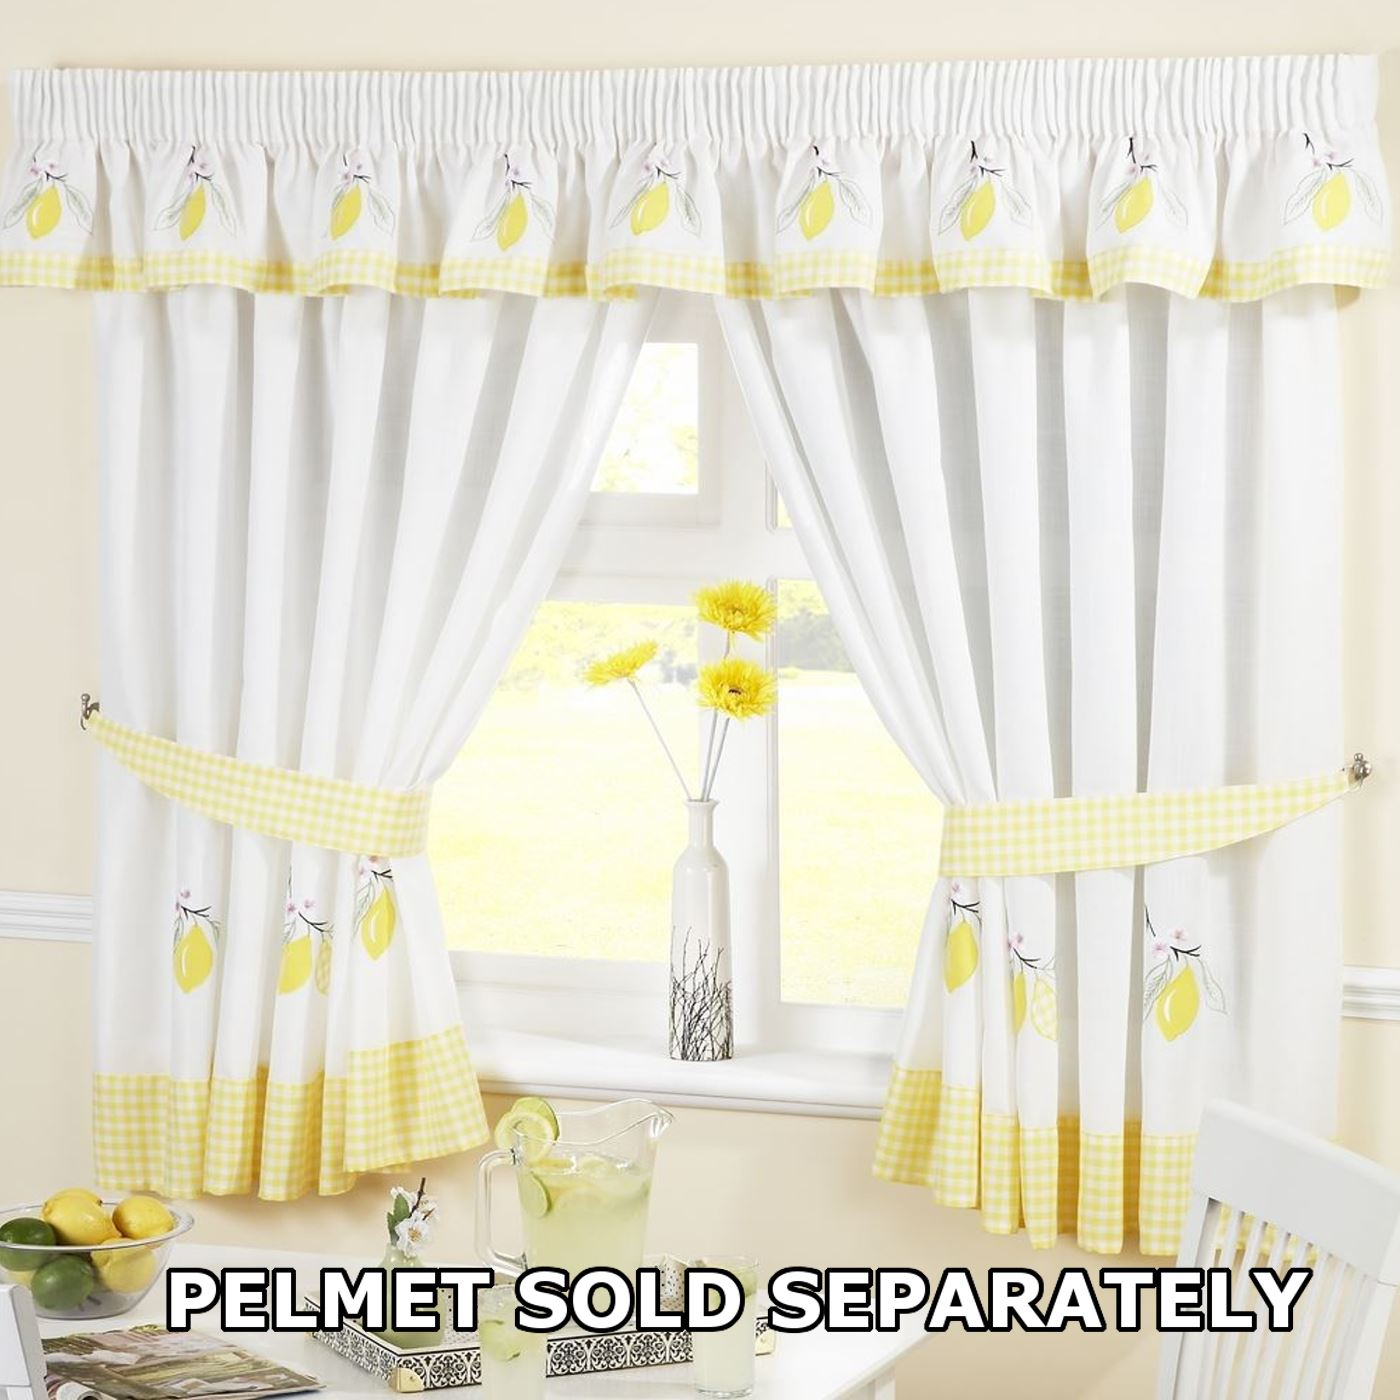 Kitchen Curtain Pelmets: Kitchen Window Curtains Pair Voile Or Matching Pelmets